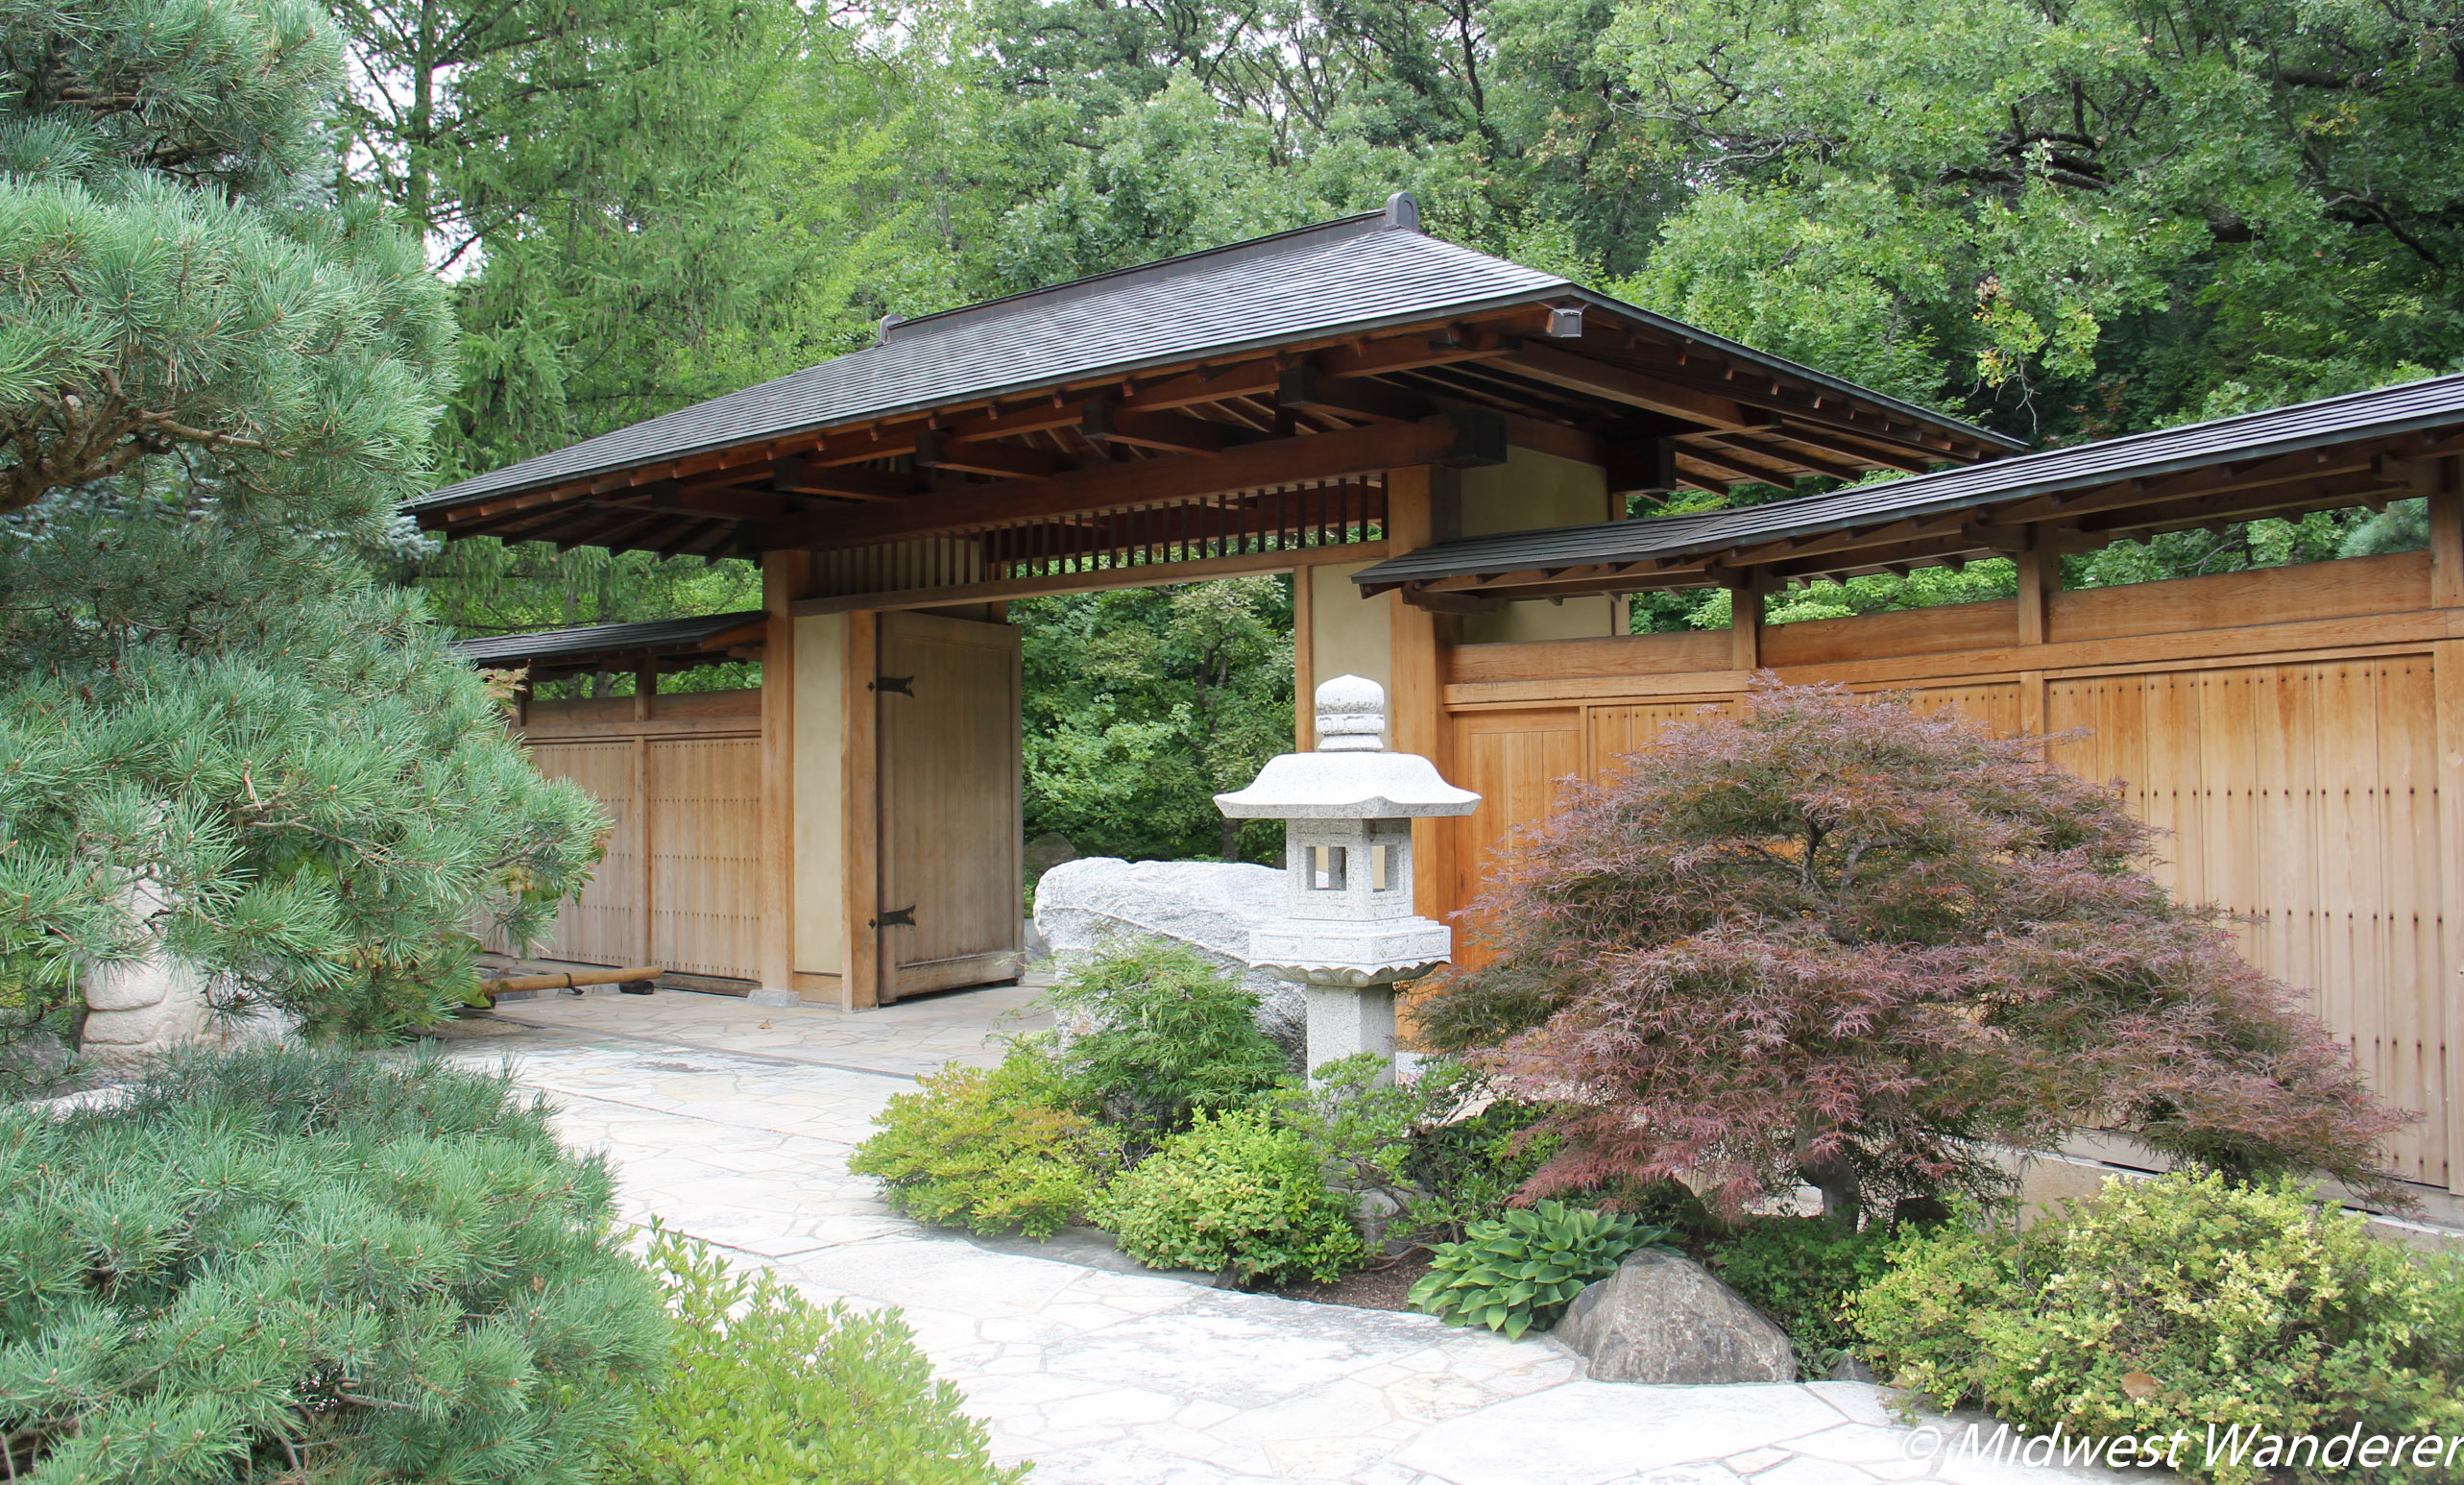 A stroll through anderson japanese gardens midwest wanderer for Japanese garden entrance